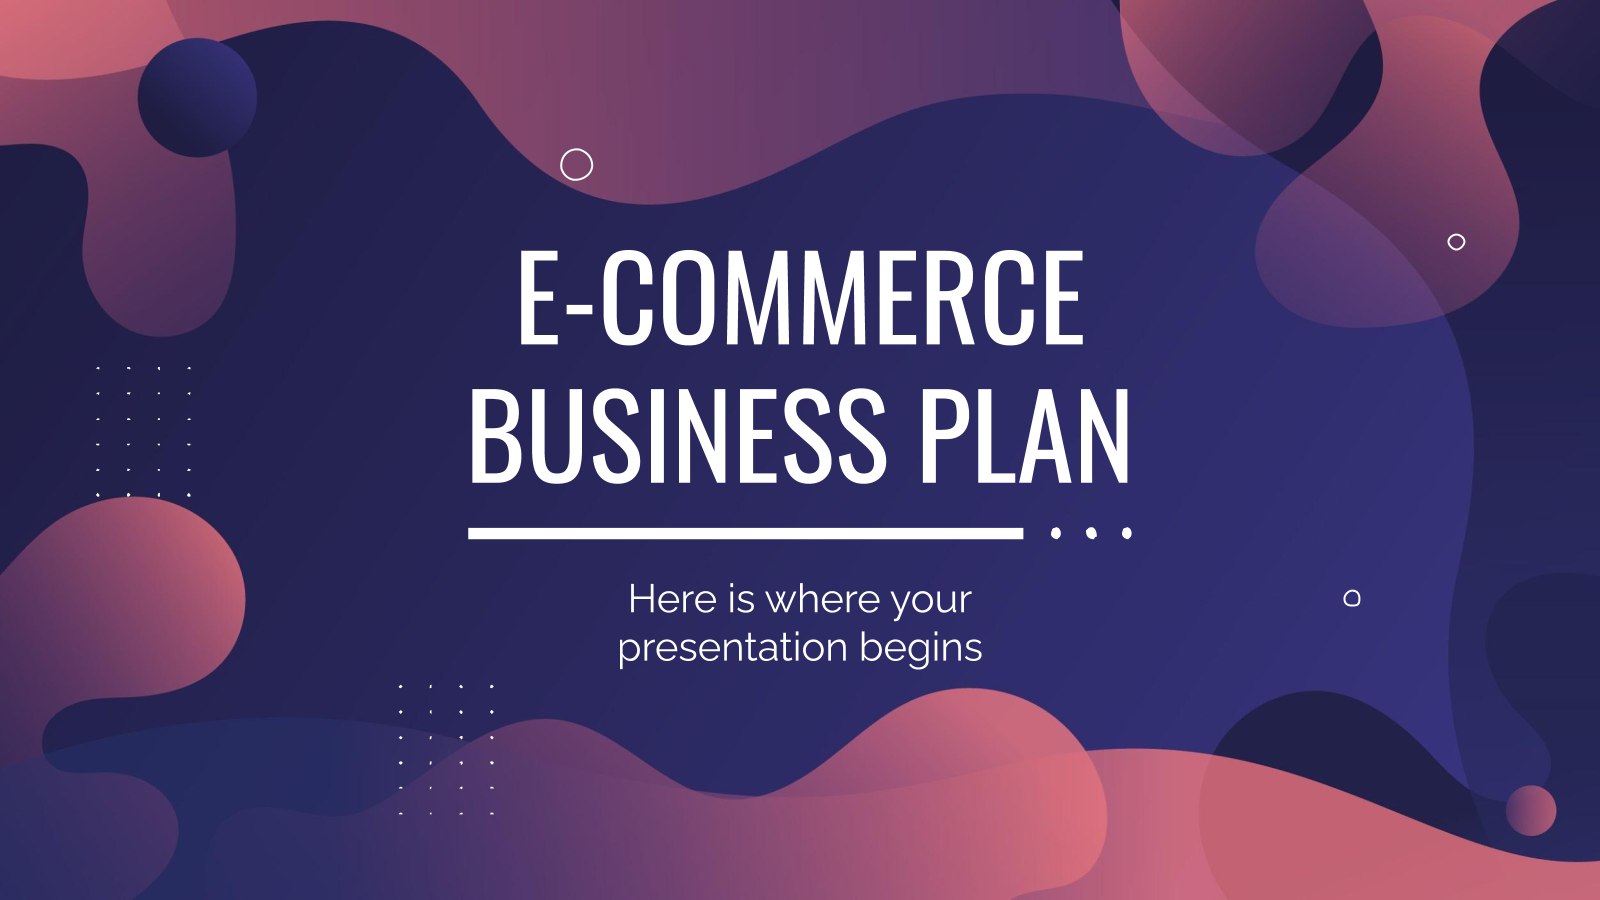 E-Commerce Business Plan presentation template